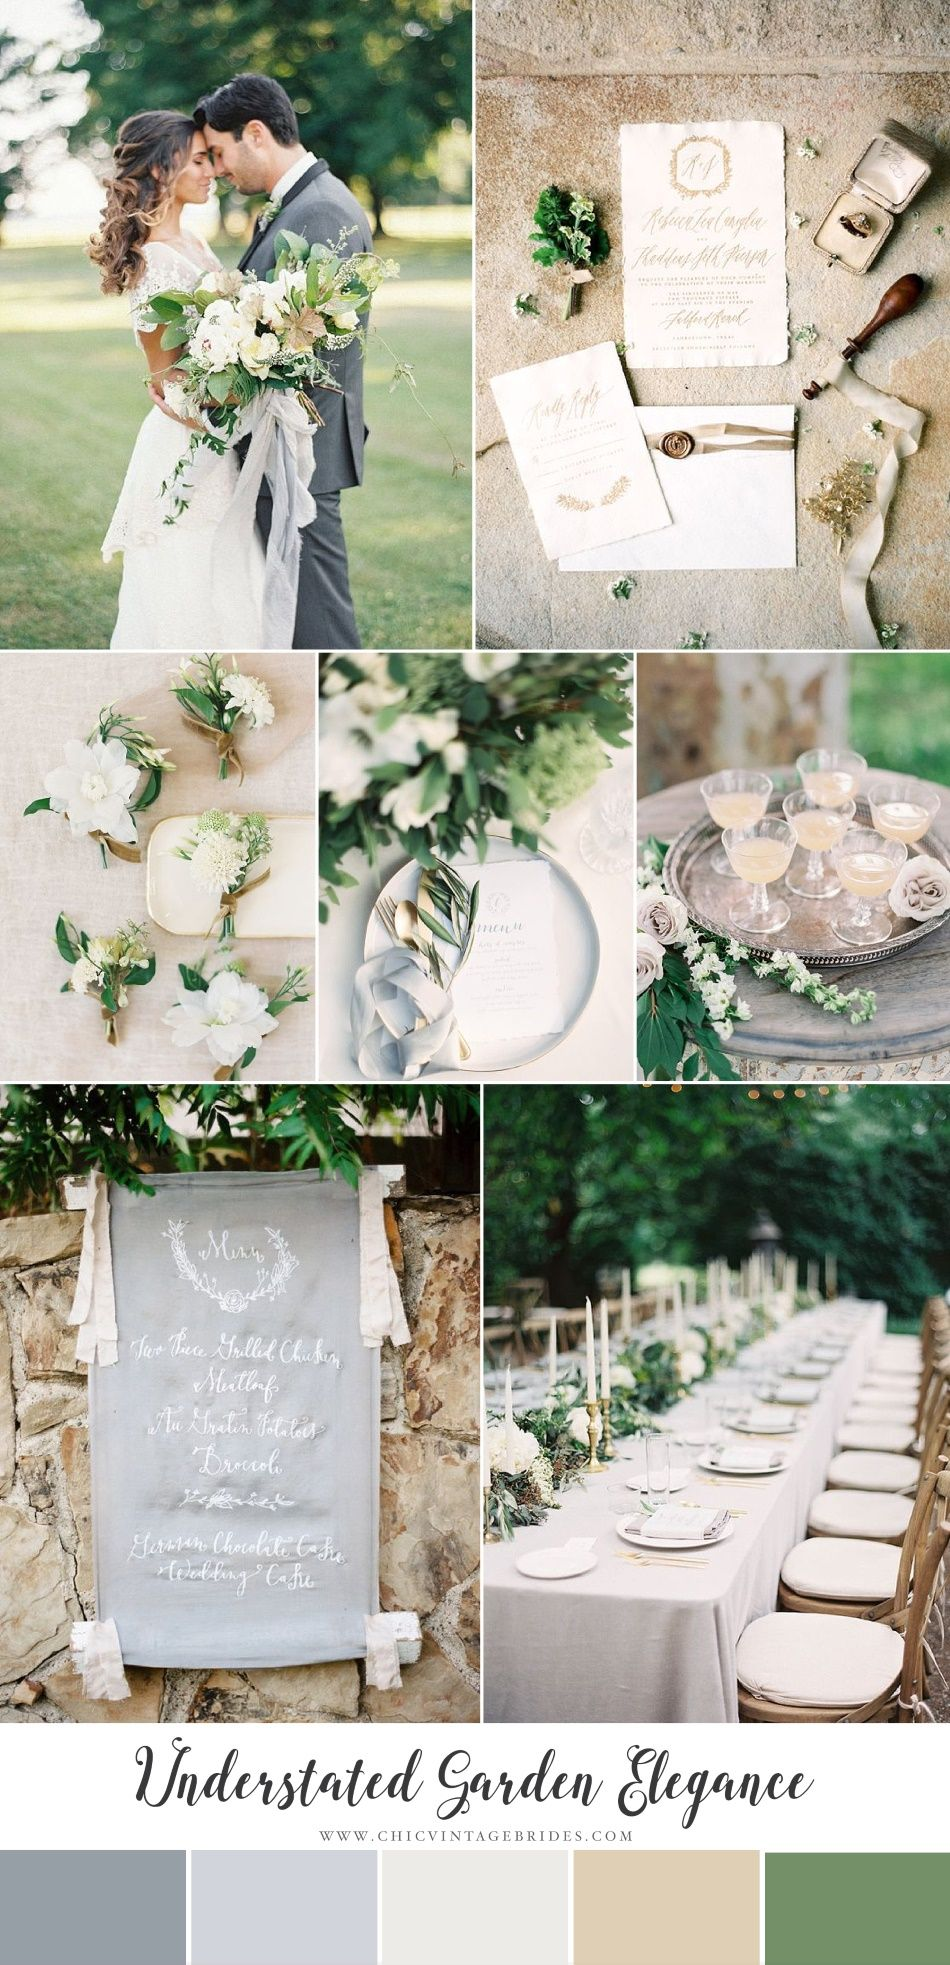 Understated Garden Elegance - Modern Vintage Wedding Inspiration | Outdoor wedding  decorations, Vintage wedding reception, Vintage wedding decorations